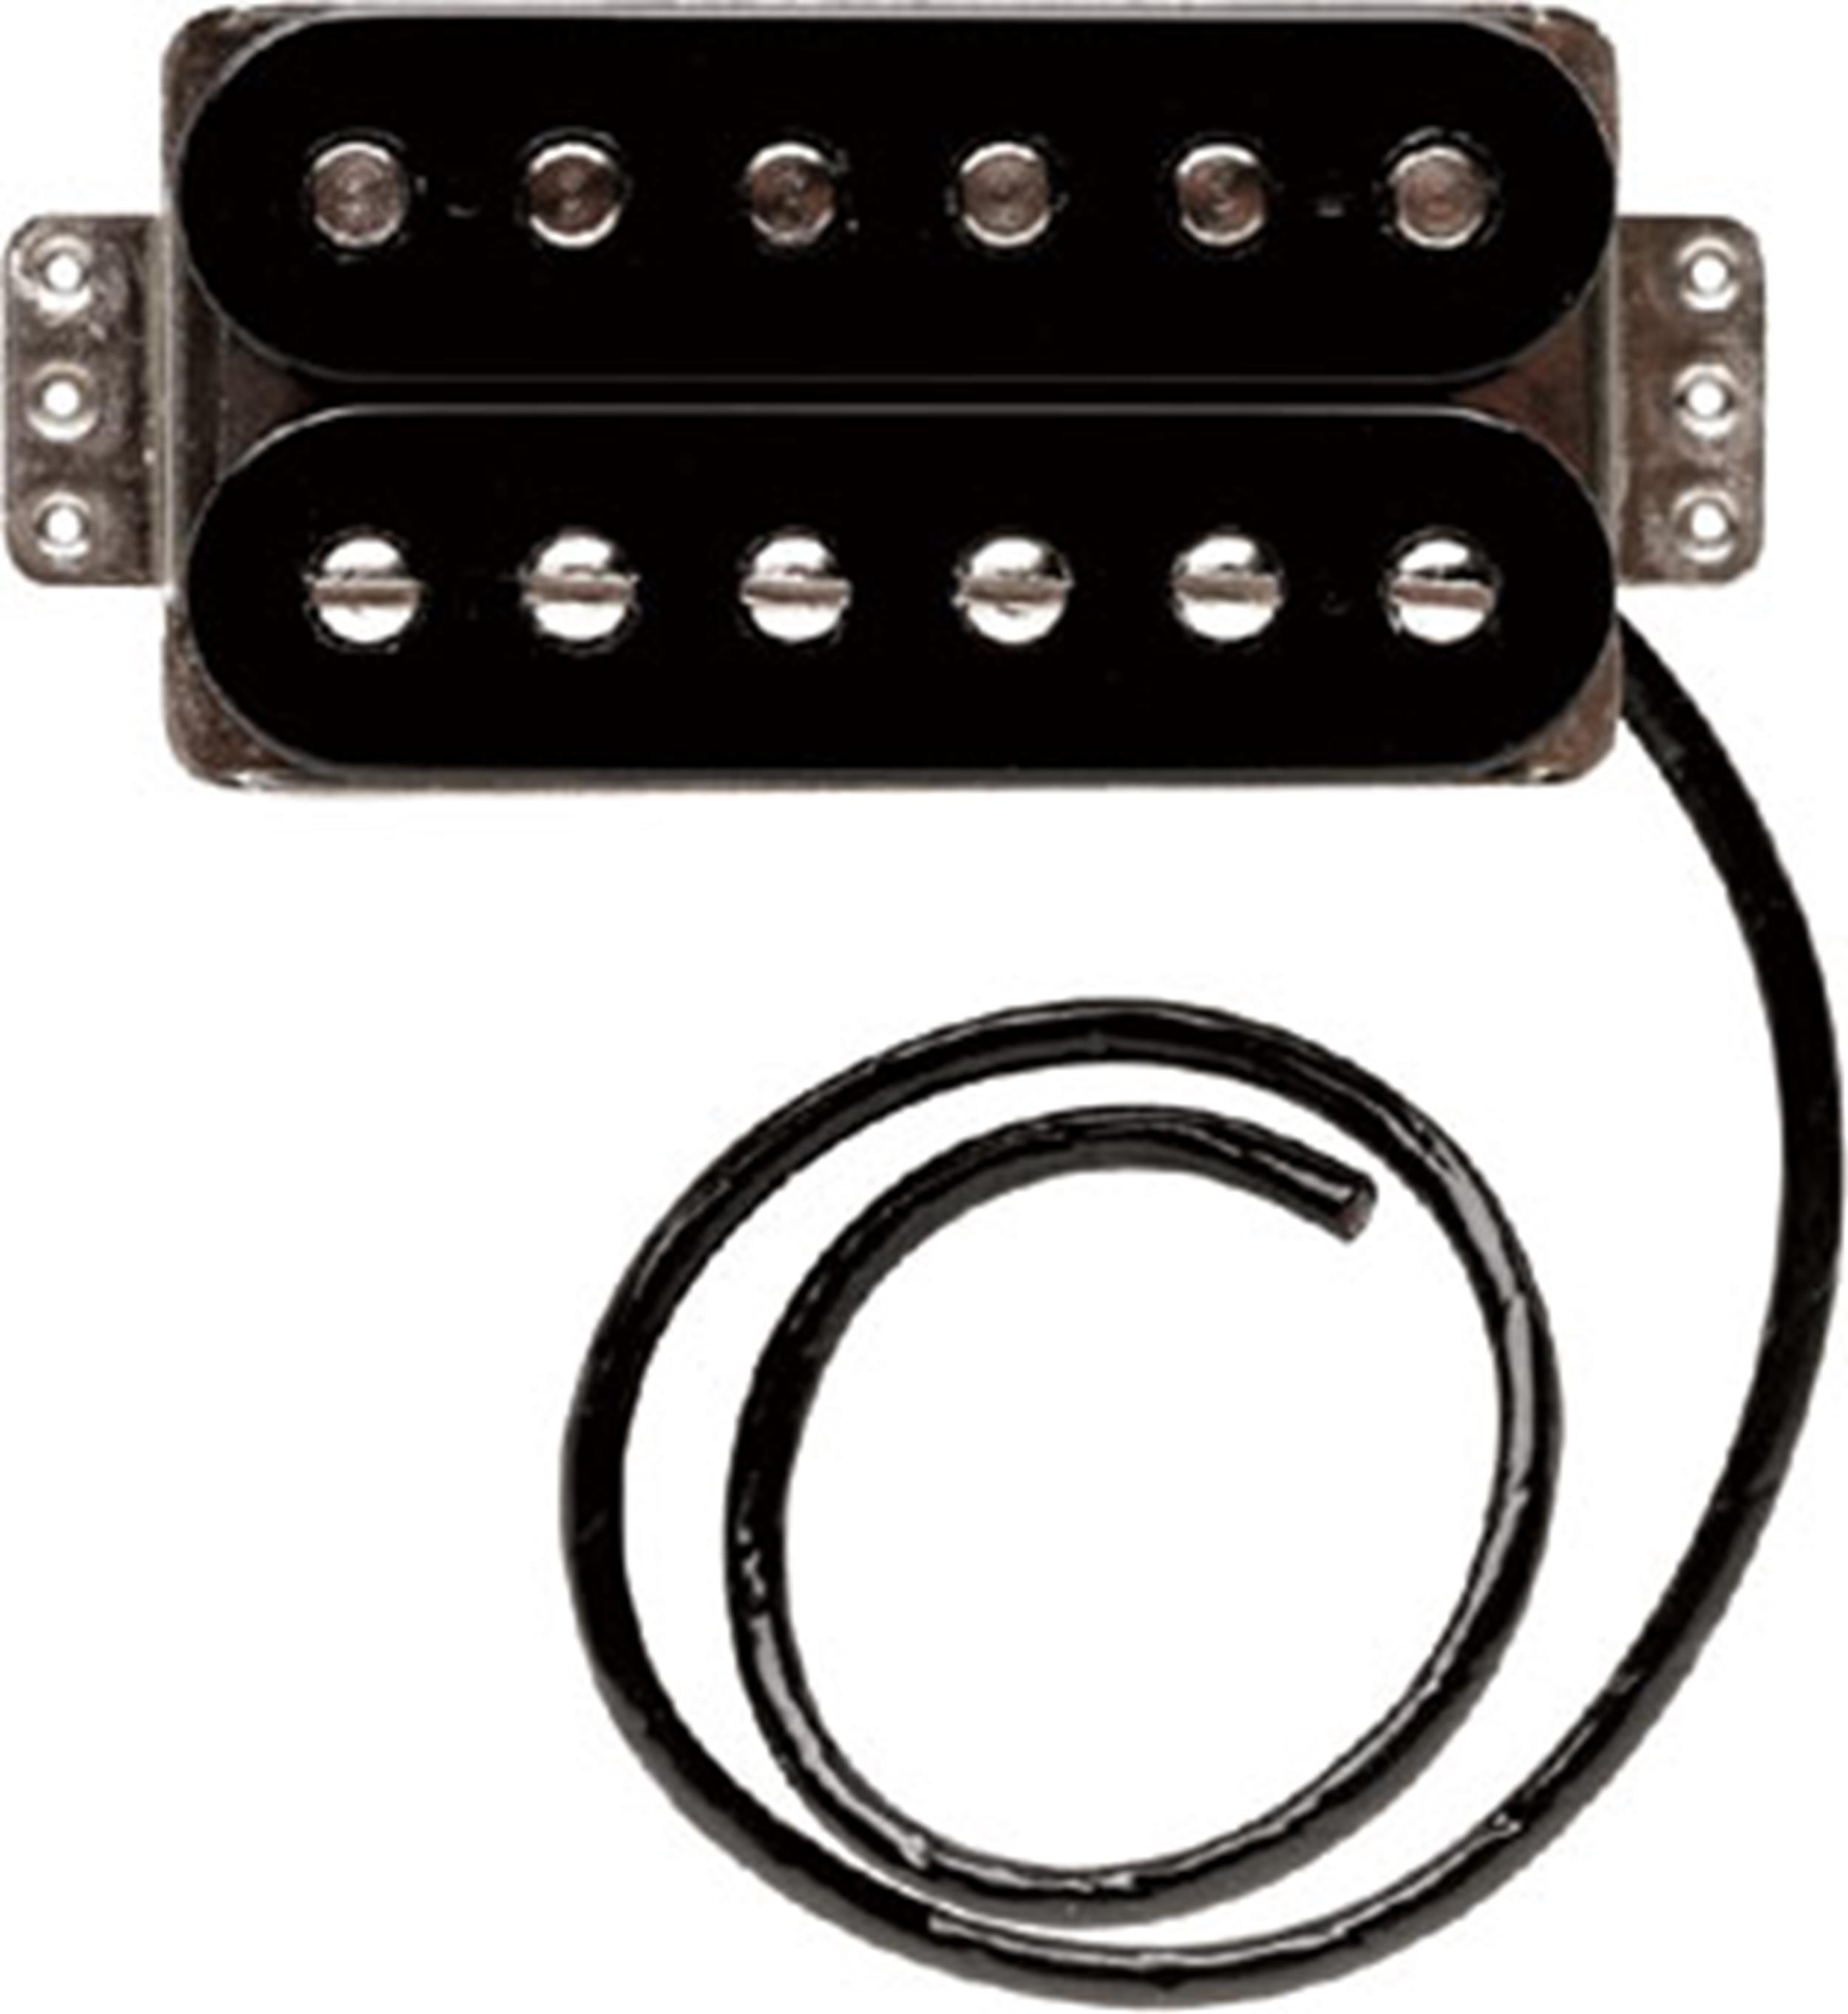 FENDER ATOMIC HUMBUCKER NECK BLACK - 0992125006